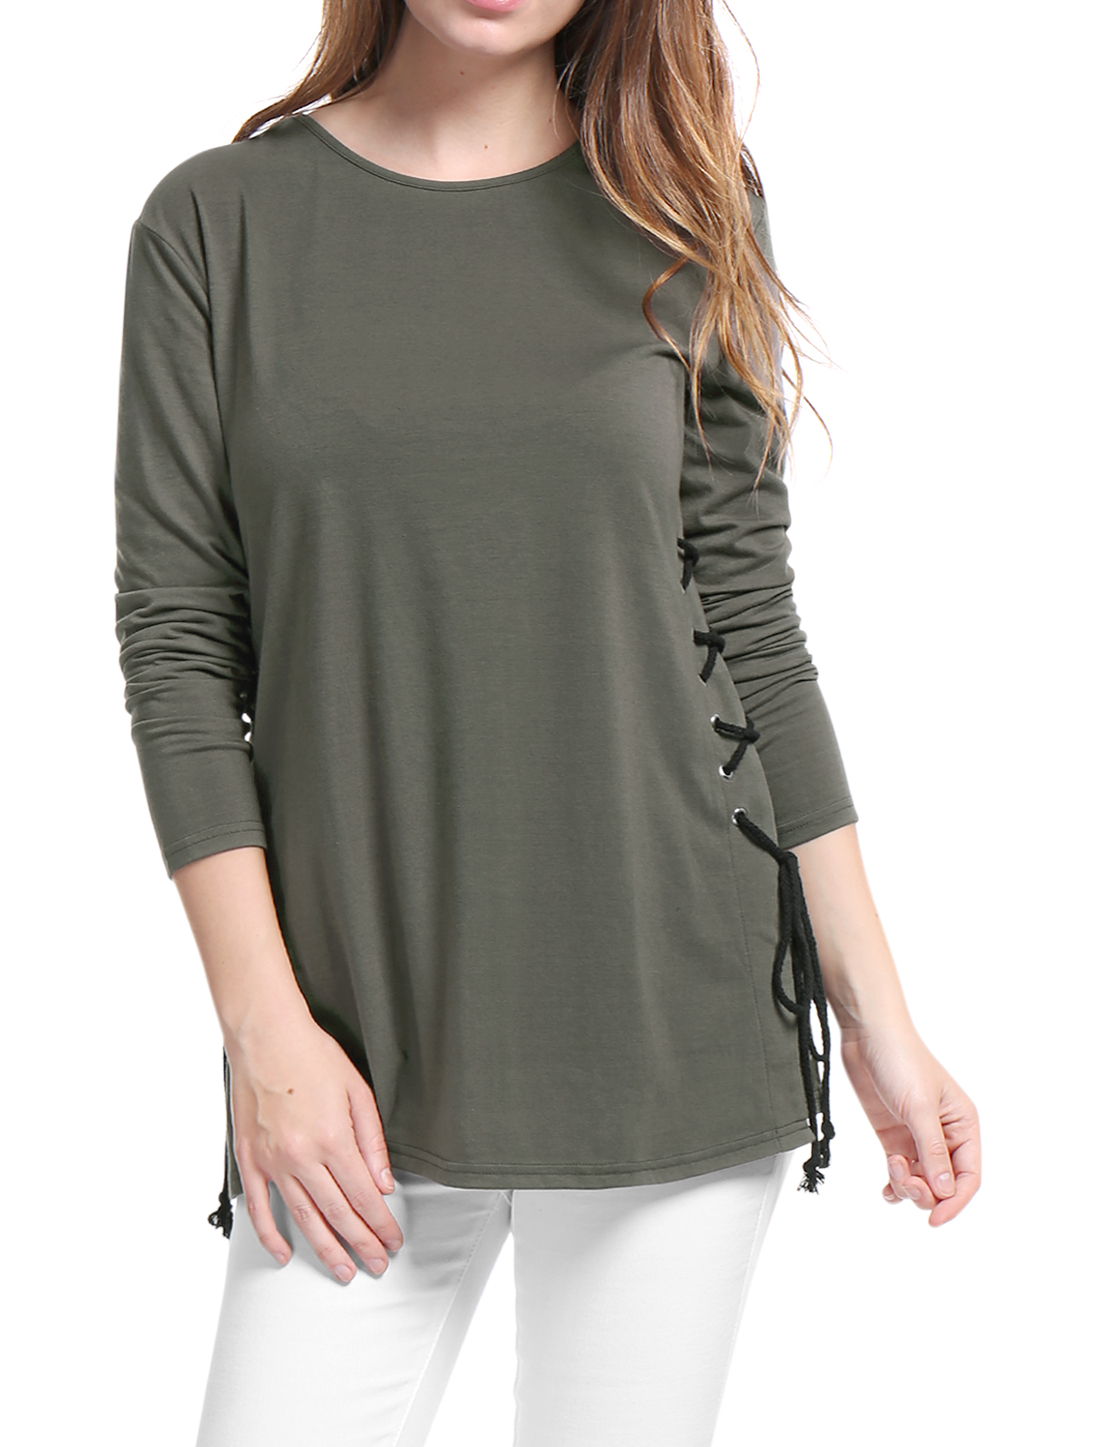 Women Lace Up Sides Long Sleeves Crew Neck Blouse Gray XS